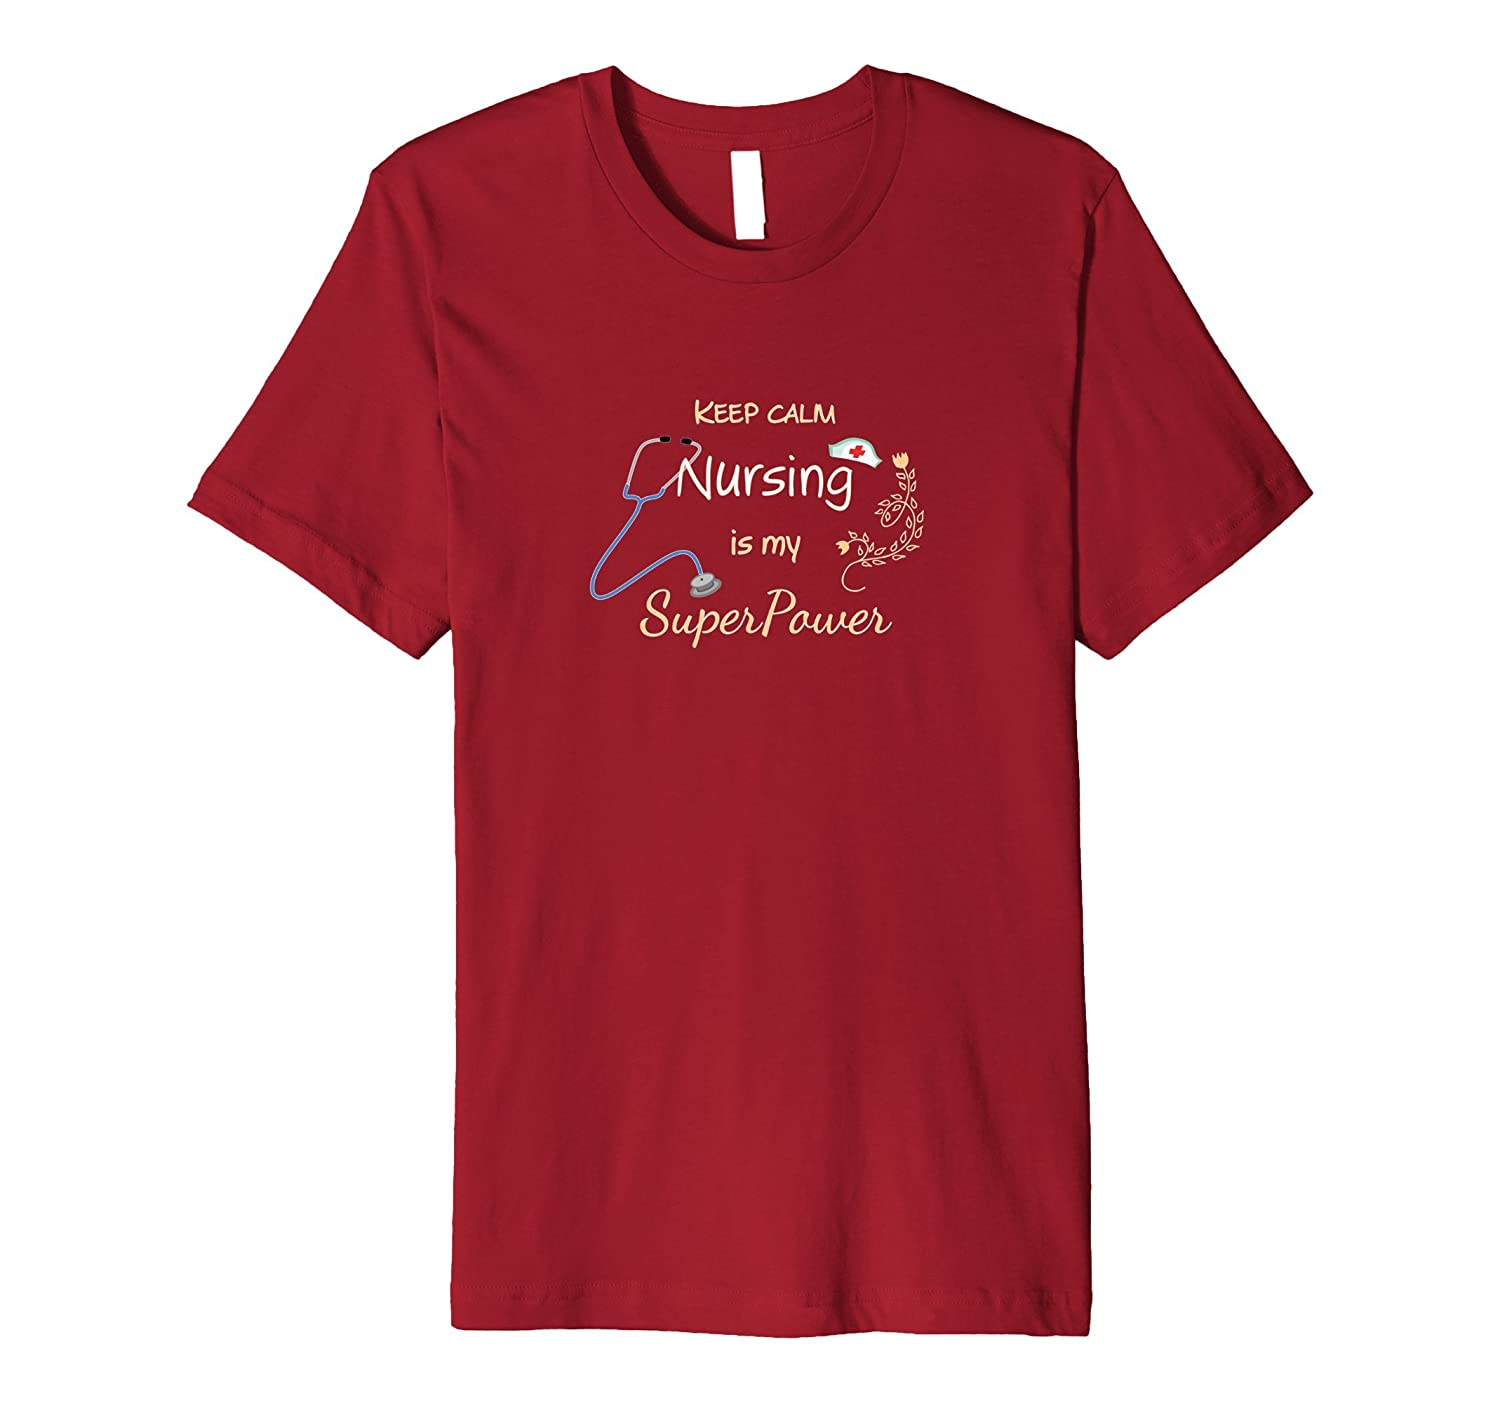 Nurse tshirts for women-Teevkd